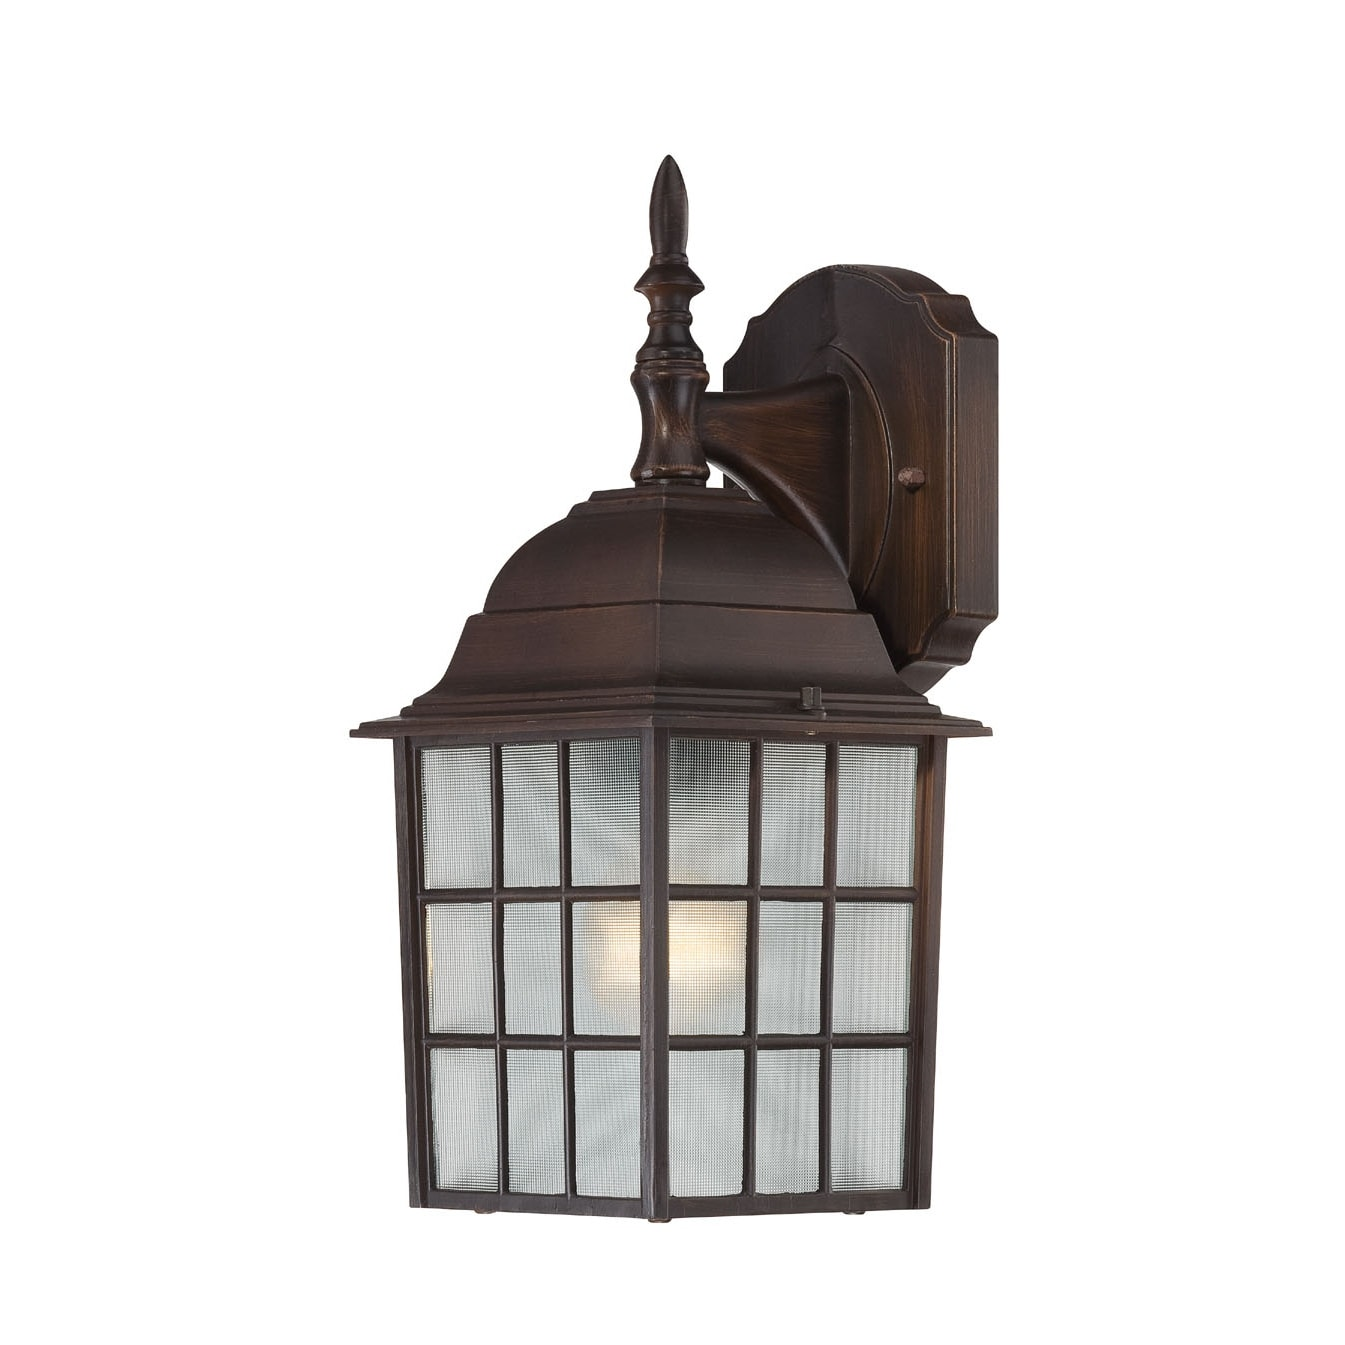 Wall Sconces Rustic: Nuvo 'Adams' 1-light Rustic Bronze 14-inch Wall Sconce